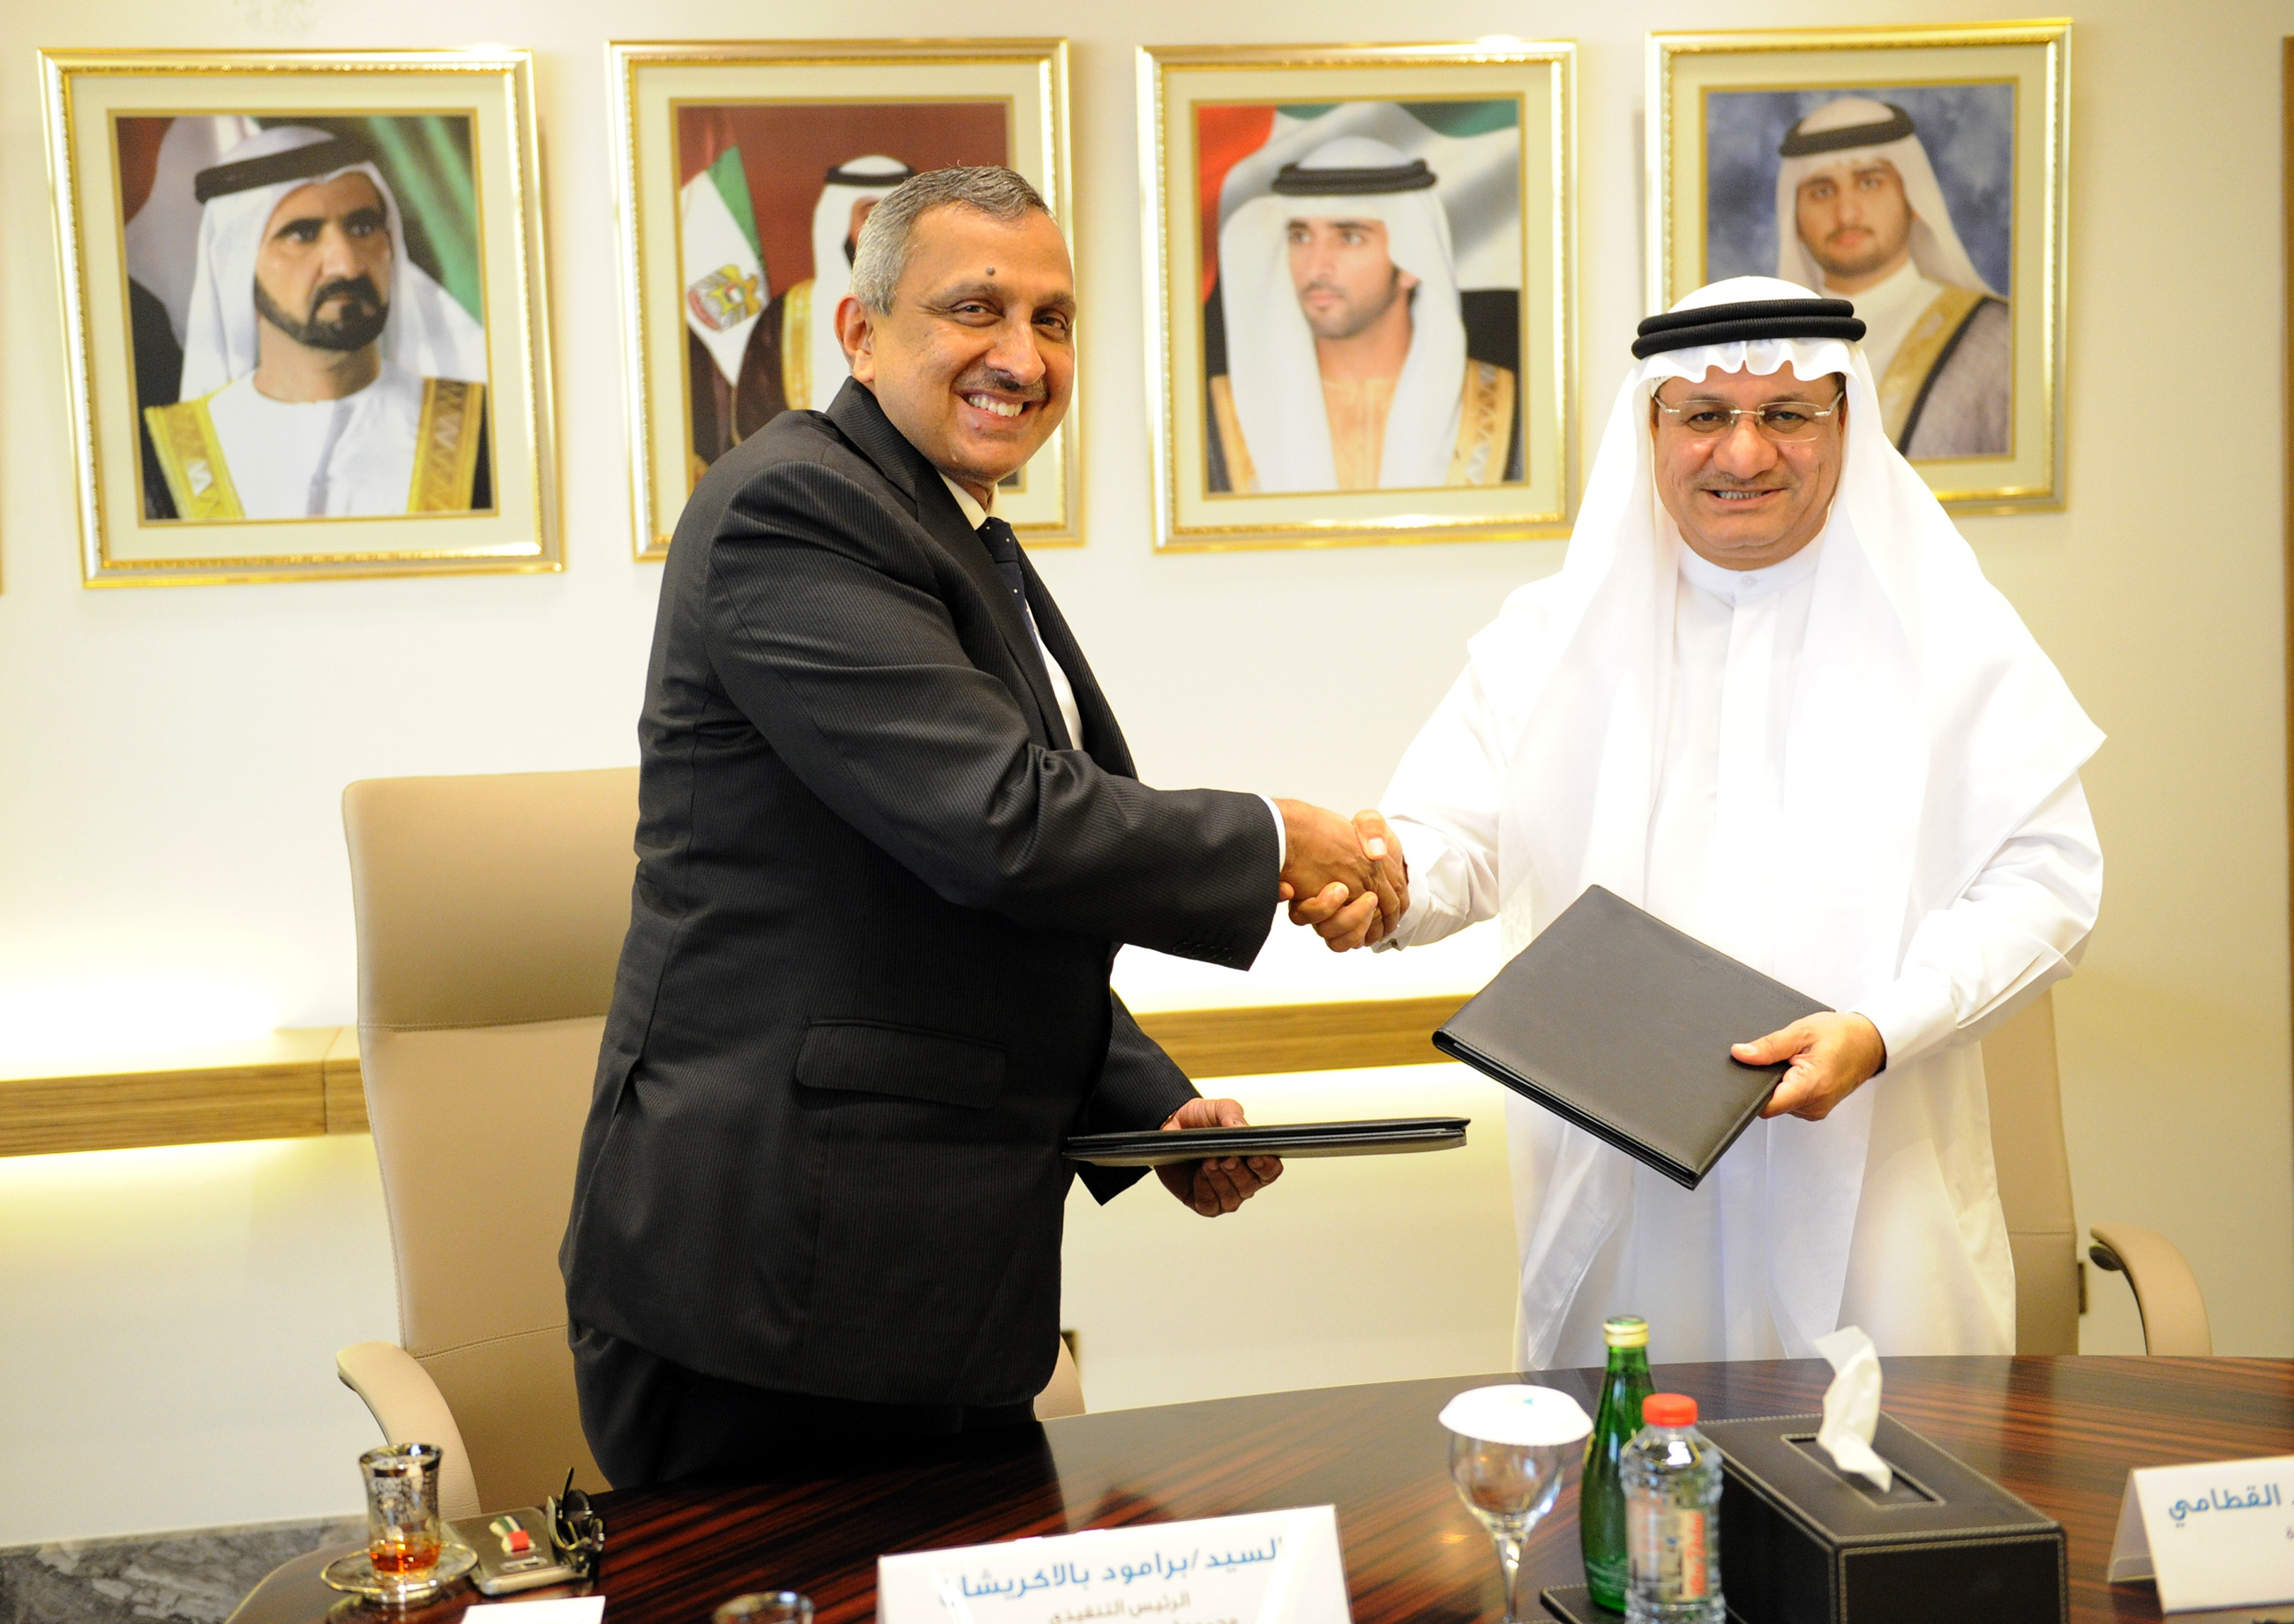 Emirates Hospitals Group partners with DHA to provide restorative neurorehabilitation for UAE patients at its Slovakia facility